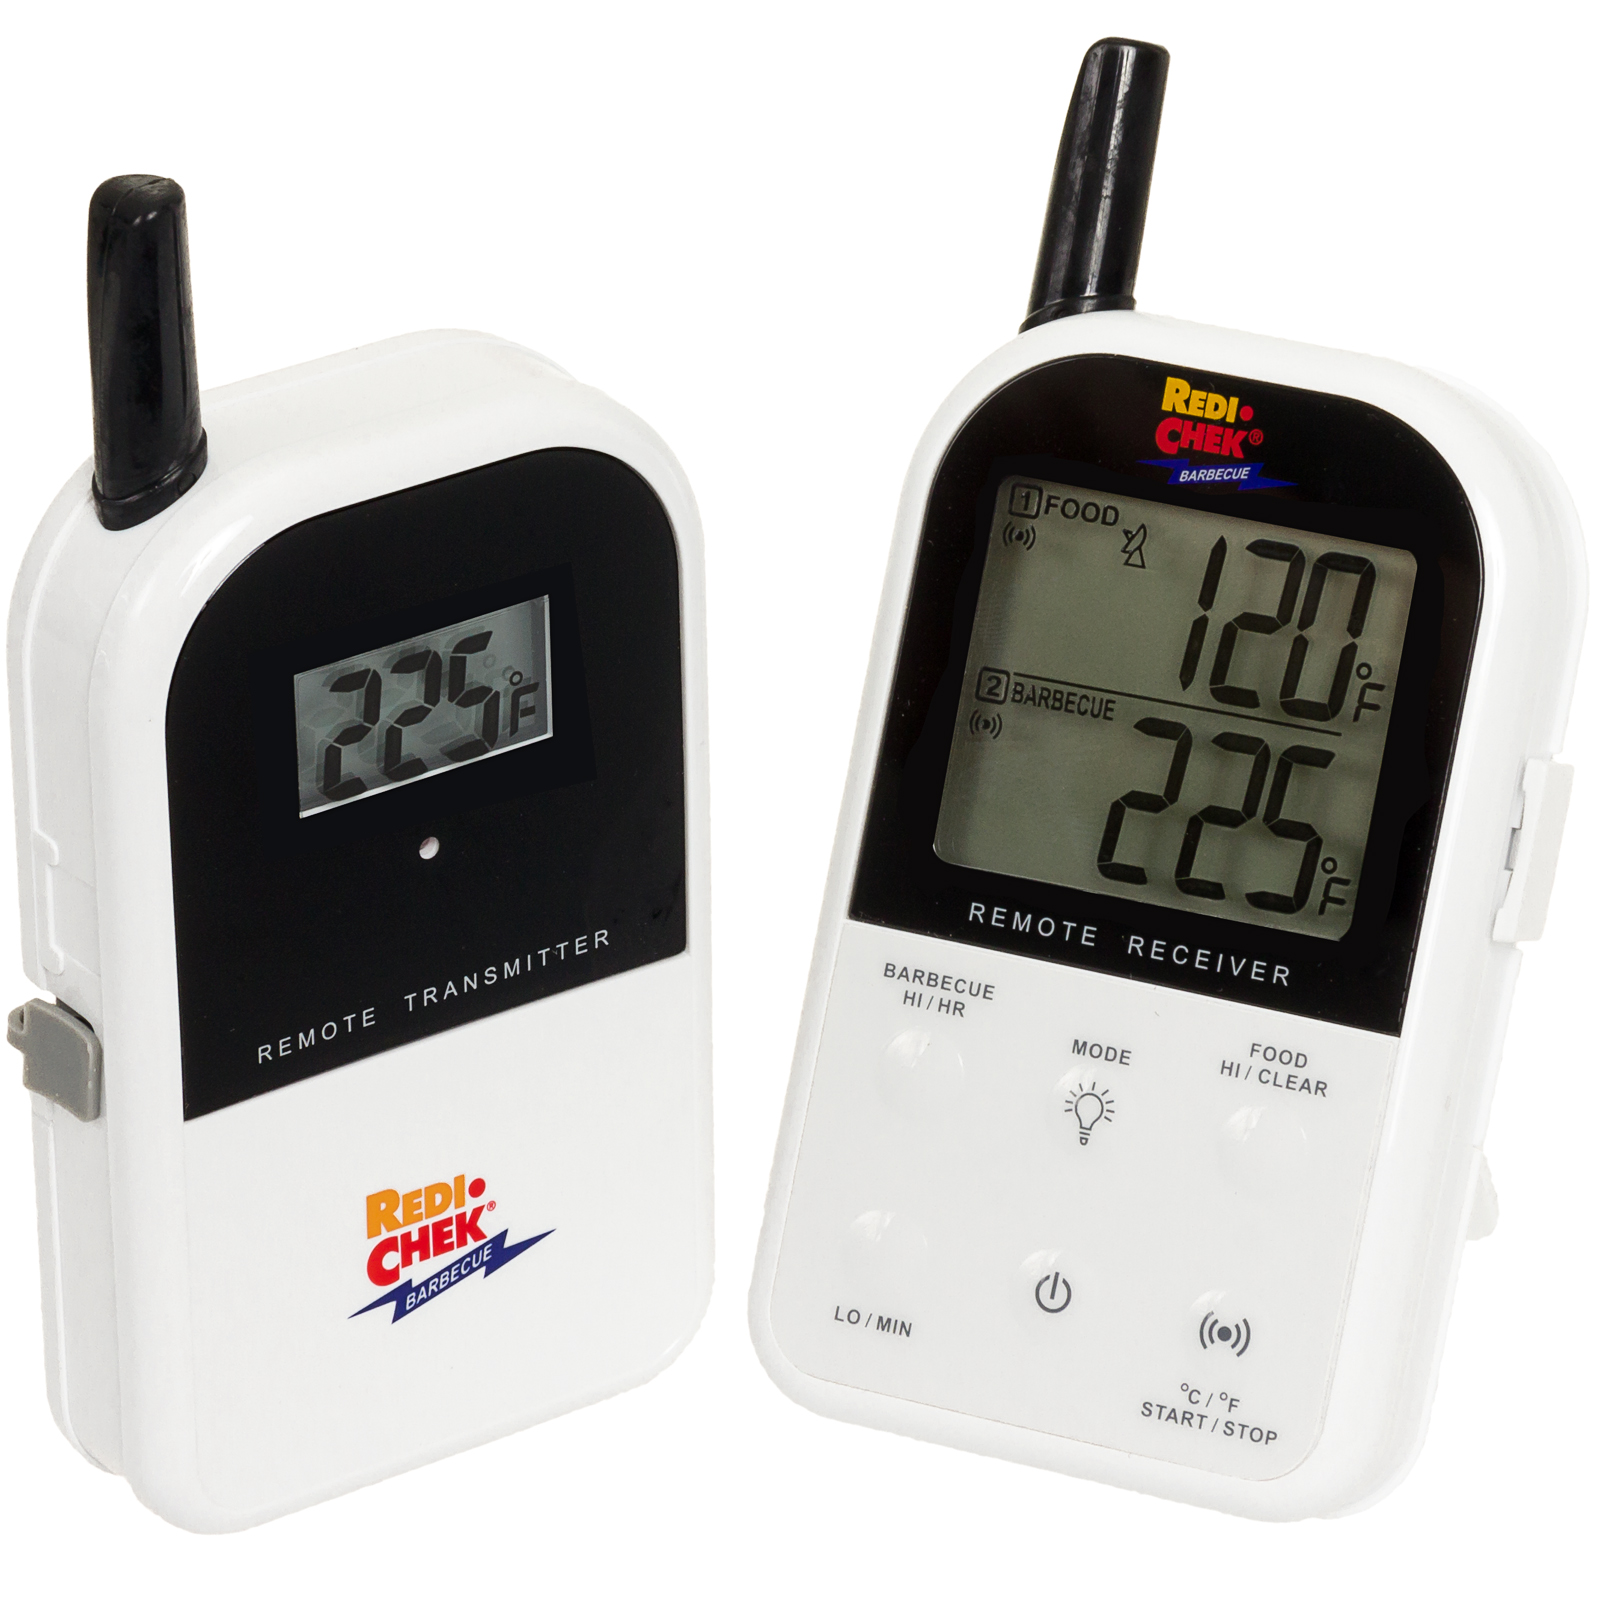 Maverick Wireless Digital Barbecue Smoker Meat Thermometer ET-732